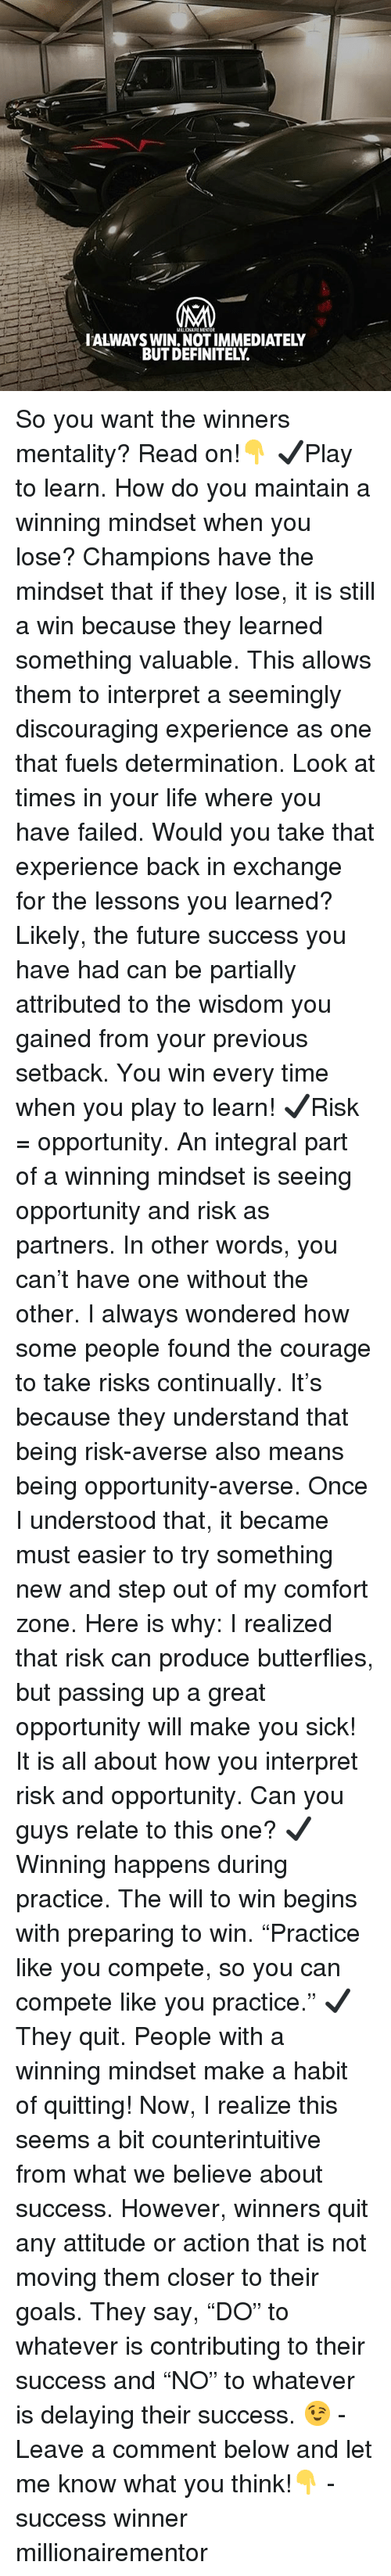 "You Have Failed: WILLIONAIRE MENTOR  IALWAYS WIN. NOT IMMEDIATELY  BUT DEFINITELY. So you want the winners mentality? Read on!👇 ✔️Play to learn. How do you maintain a winning mindset when you lose? Champions have the mindset that if they lose, it is still a win because they learned something valuable. This allows them to interpret a seemingly discouraging experience as one that fuels determination. Look at times in your life where you have failed. Would you take that experience back in exchange for the lessons you learned? Likely, the future success you have had can be partially attributed to the wisdom you gained from your previous setback. You win every time when you play to learn! ✔️Risk = opportunity. An integral part of a winning mindset is seeing opportunity and risk as partners. In other words, you can't have one without the other. I always wondered how some people found the courage to take risks continually. It's because they understand that being risk-averse also means being opportunity-averse. Once I understood that, it became must easier to try something new and step out of my comfort zone. Here is why: I realized that risk can produce butterflies, but passing up a great opportunity will make you sick! It is all about how you interpret risk and opportunity. Can you guys relate to this one? ✔️Winning happens during practice. The will to win begins with preparing to win. ""Practice like you compete, so you can compete like you practice."" ✔️They quit. People with a winning mindset make a habit of quitting! Now, I realize this seems a bit counterintuitive from what we believe about success. However, winners quit any attitude or action that is not moving them closer to their goals. They say, ""DO"" to whatever is contributing to their success and ""NO"" to whatever is delaying their success. 😉 - Leave a comment below and let me know what you think!👇 - success winner millionairementor"